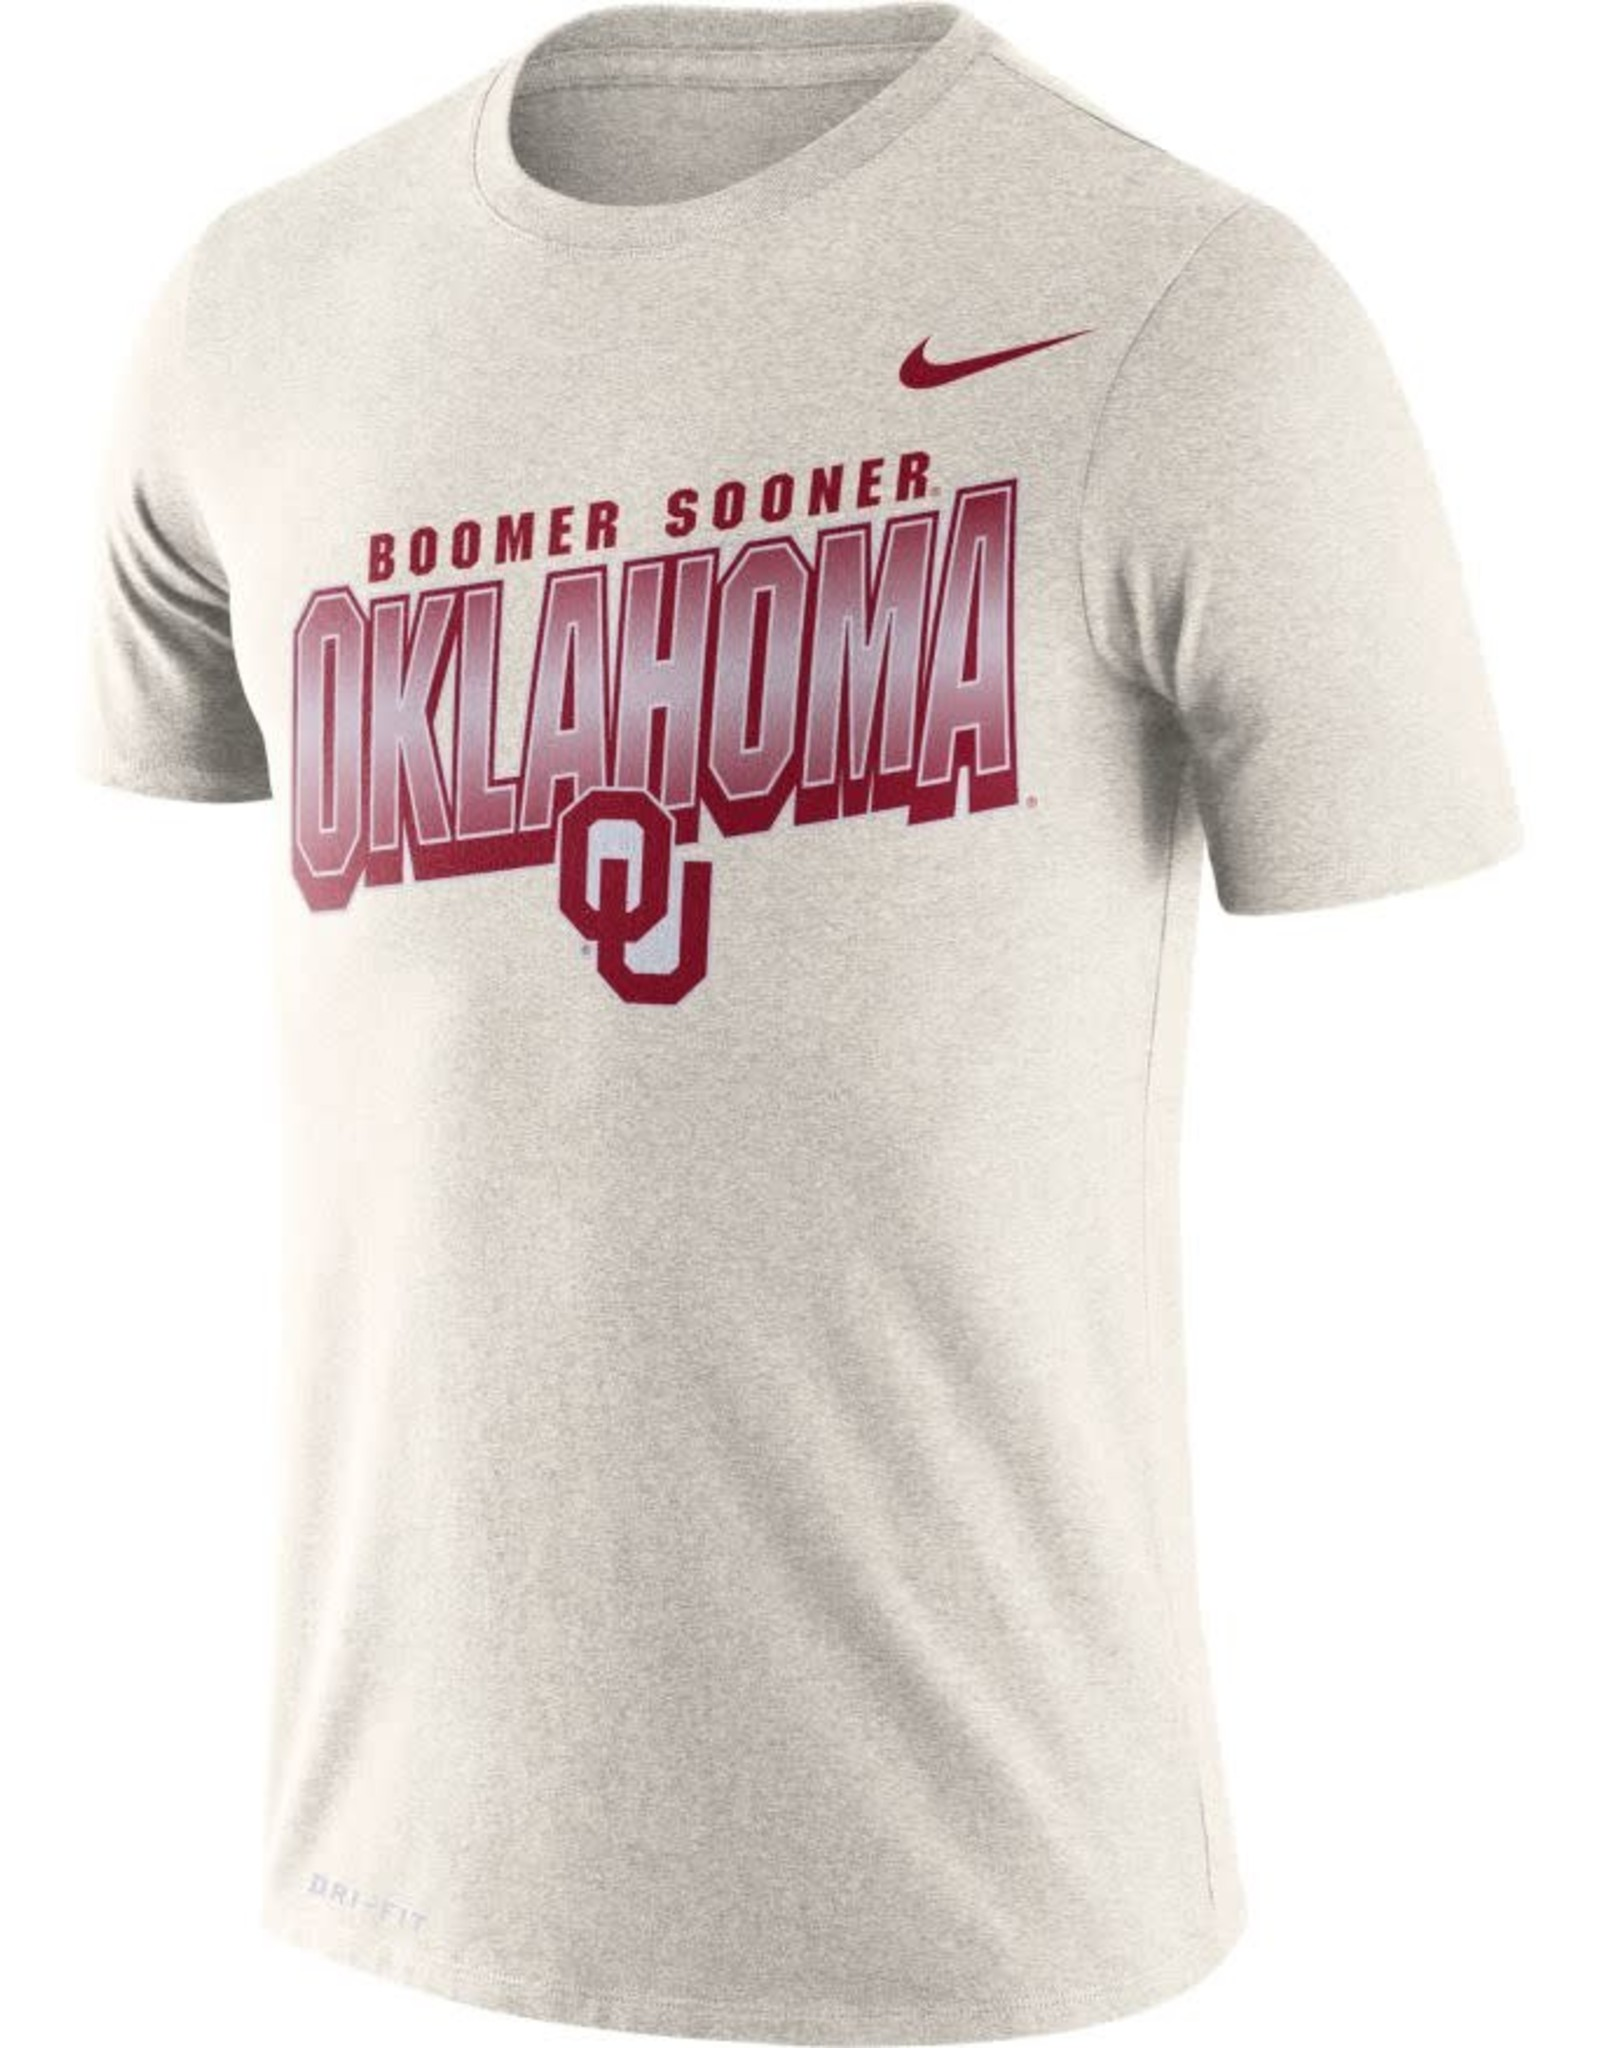 Nike Men's Nike Oklahoma Boomer Sooner Local Tee